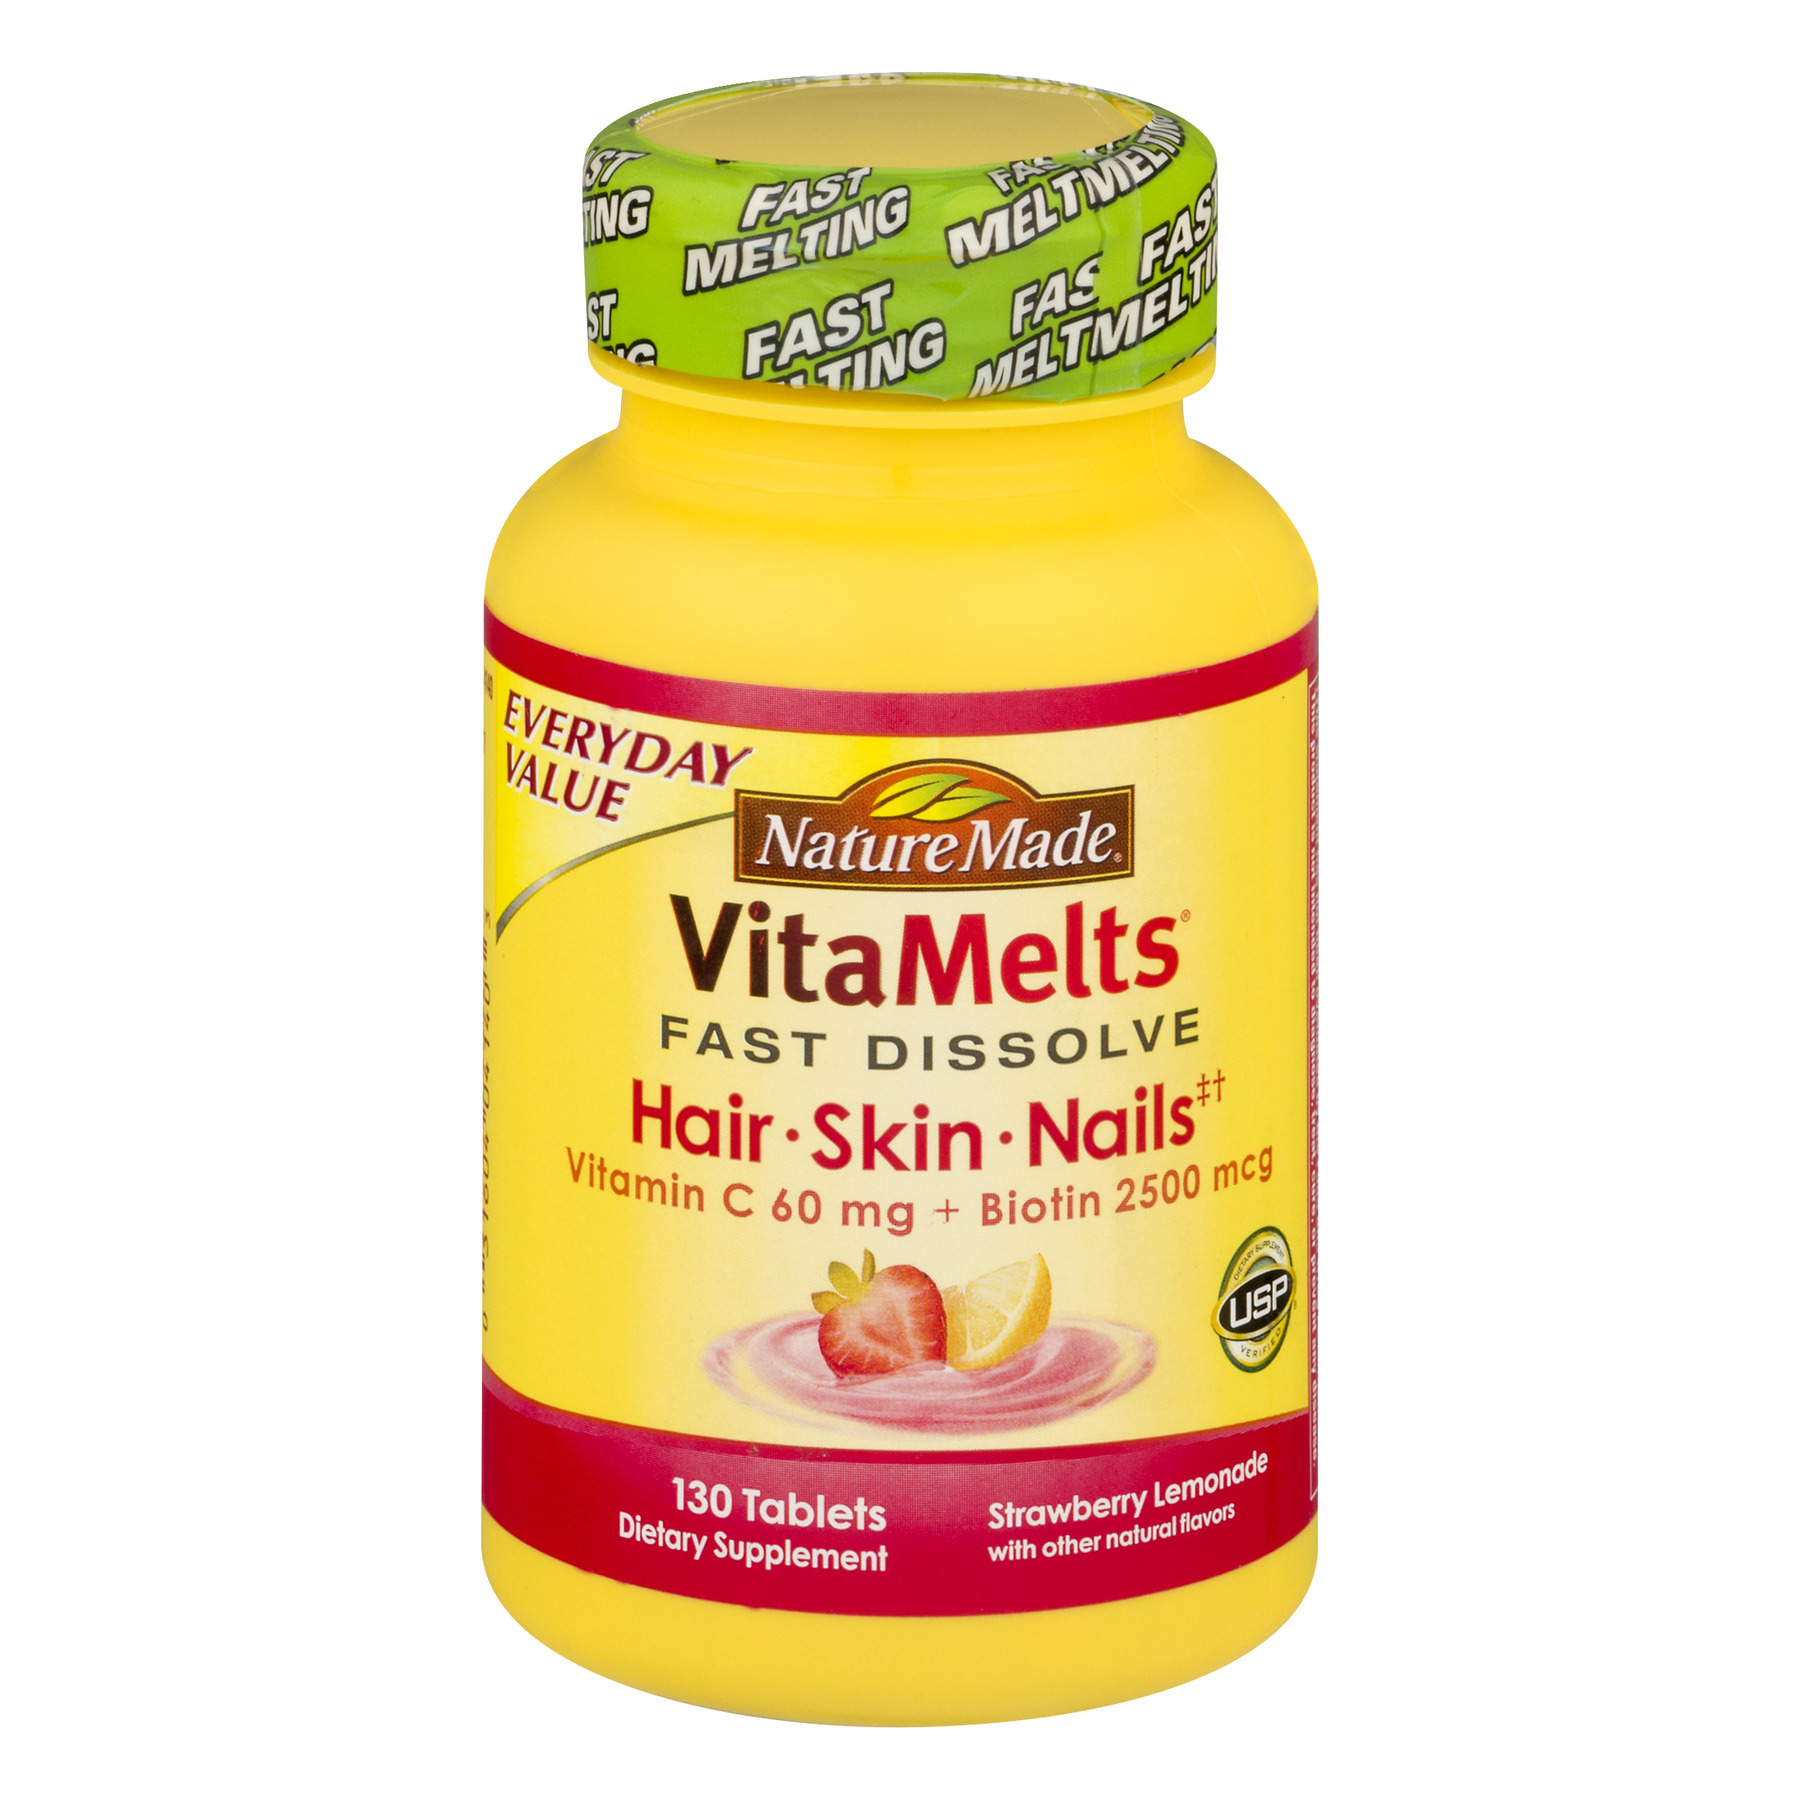 Nature Made VitaMelts Hair, Skin & Nails Fast Dissolve Tablets, 130 Ct